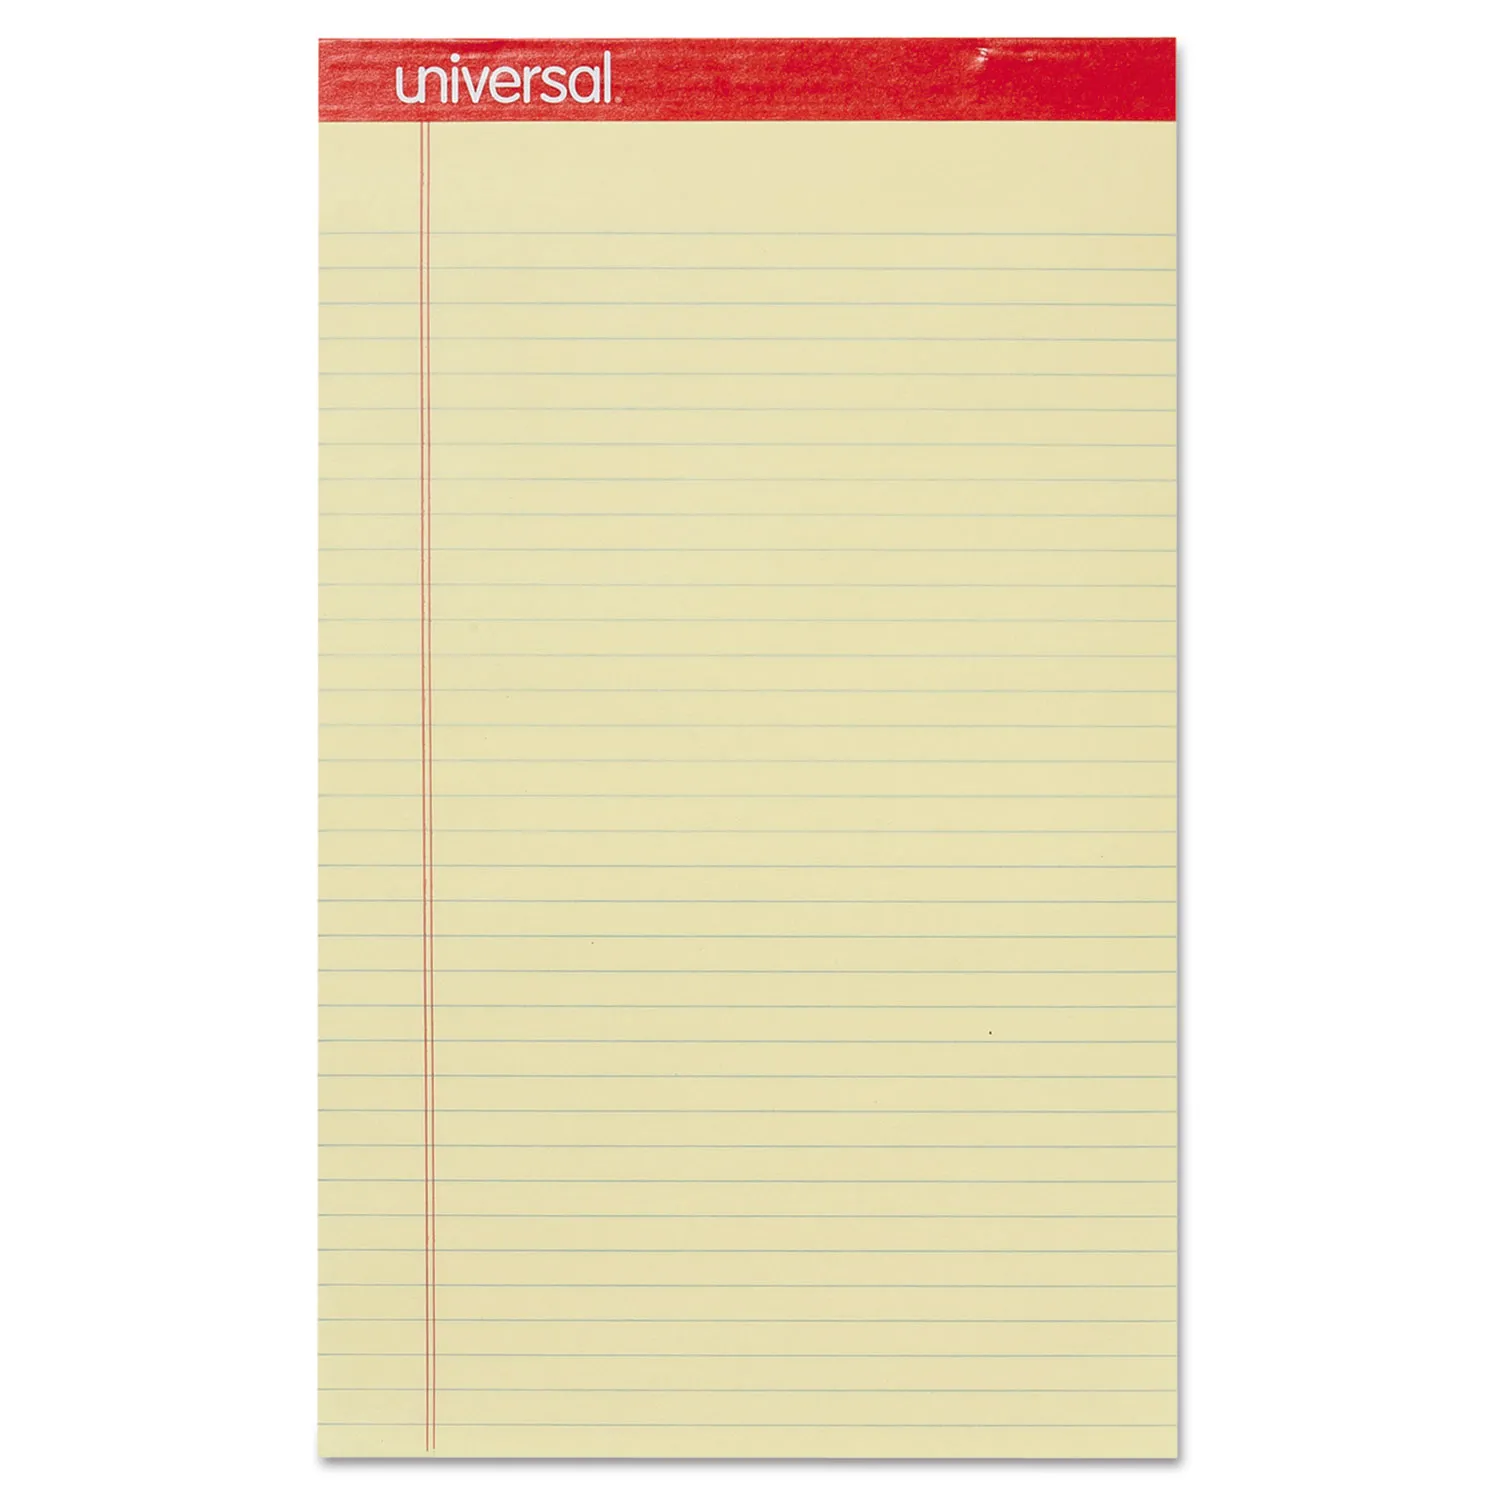 UNIVERSAL PAD LEGAL PERFORATED YELLOW 1X